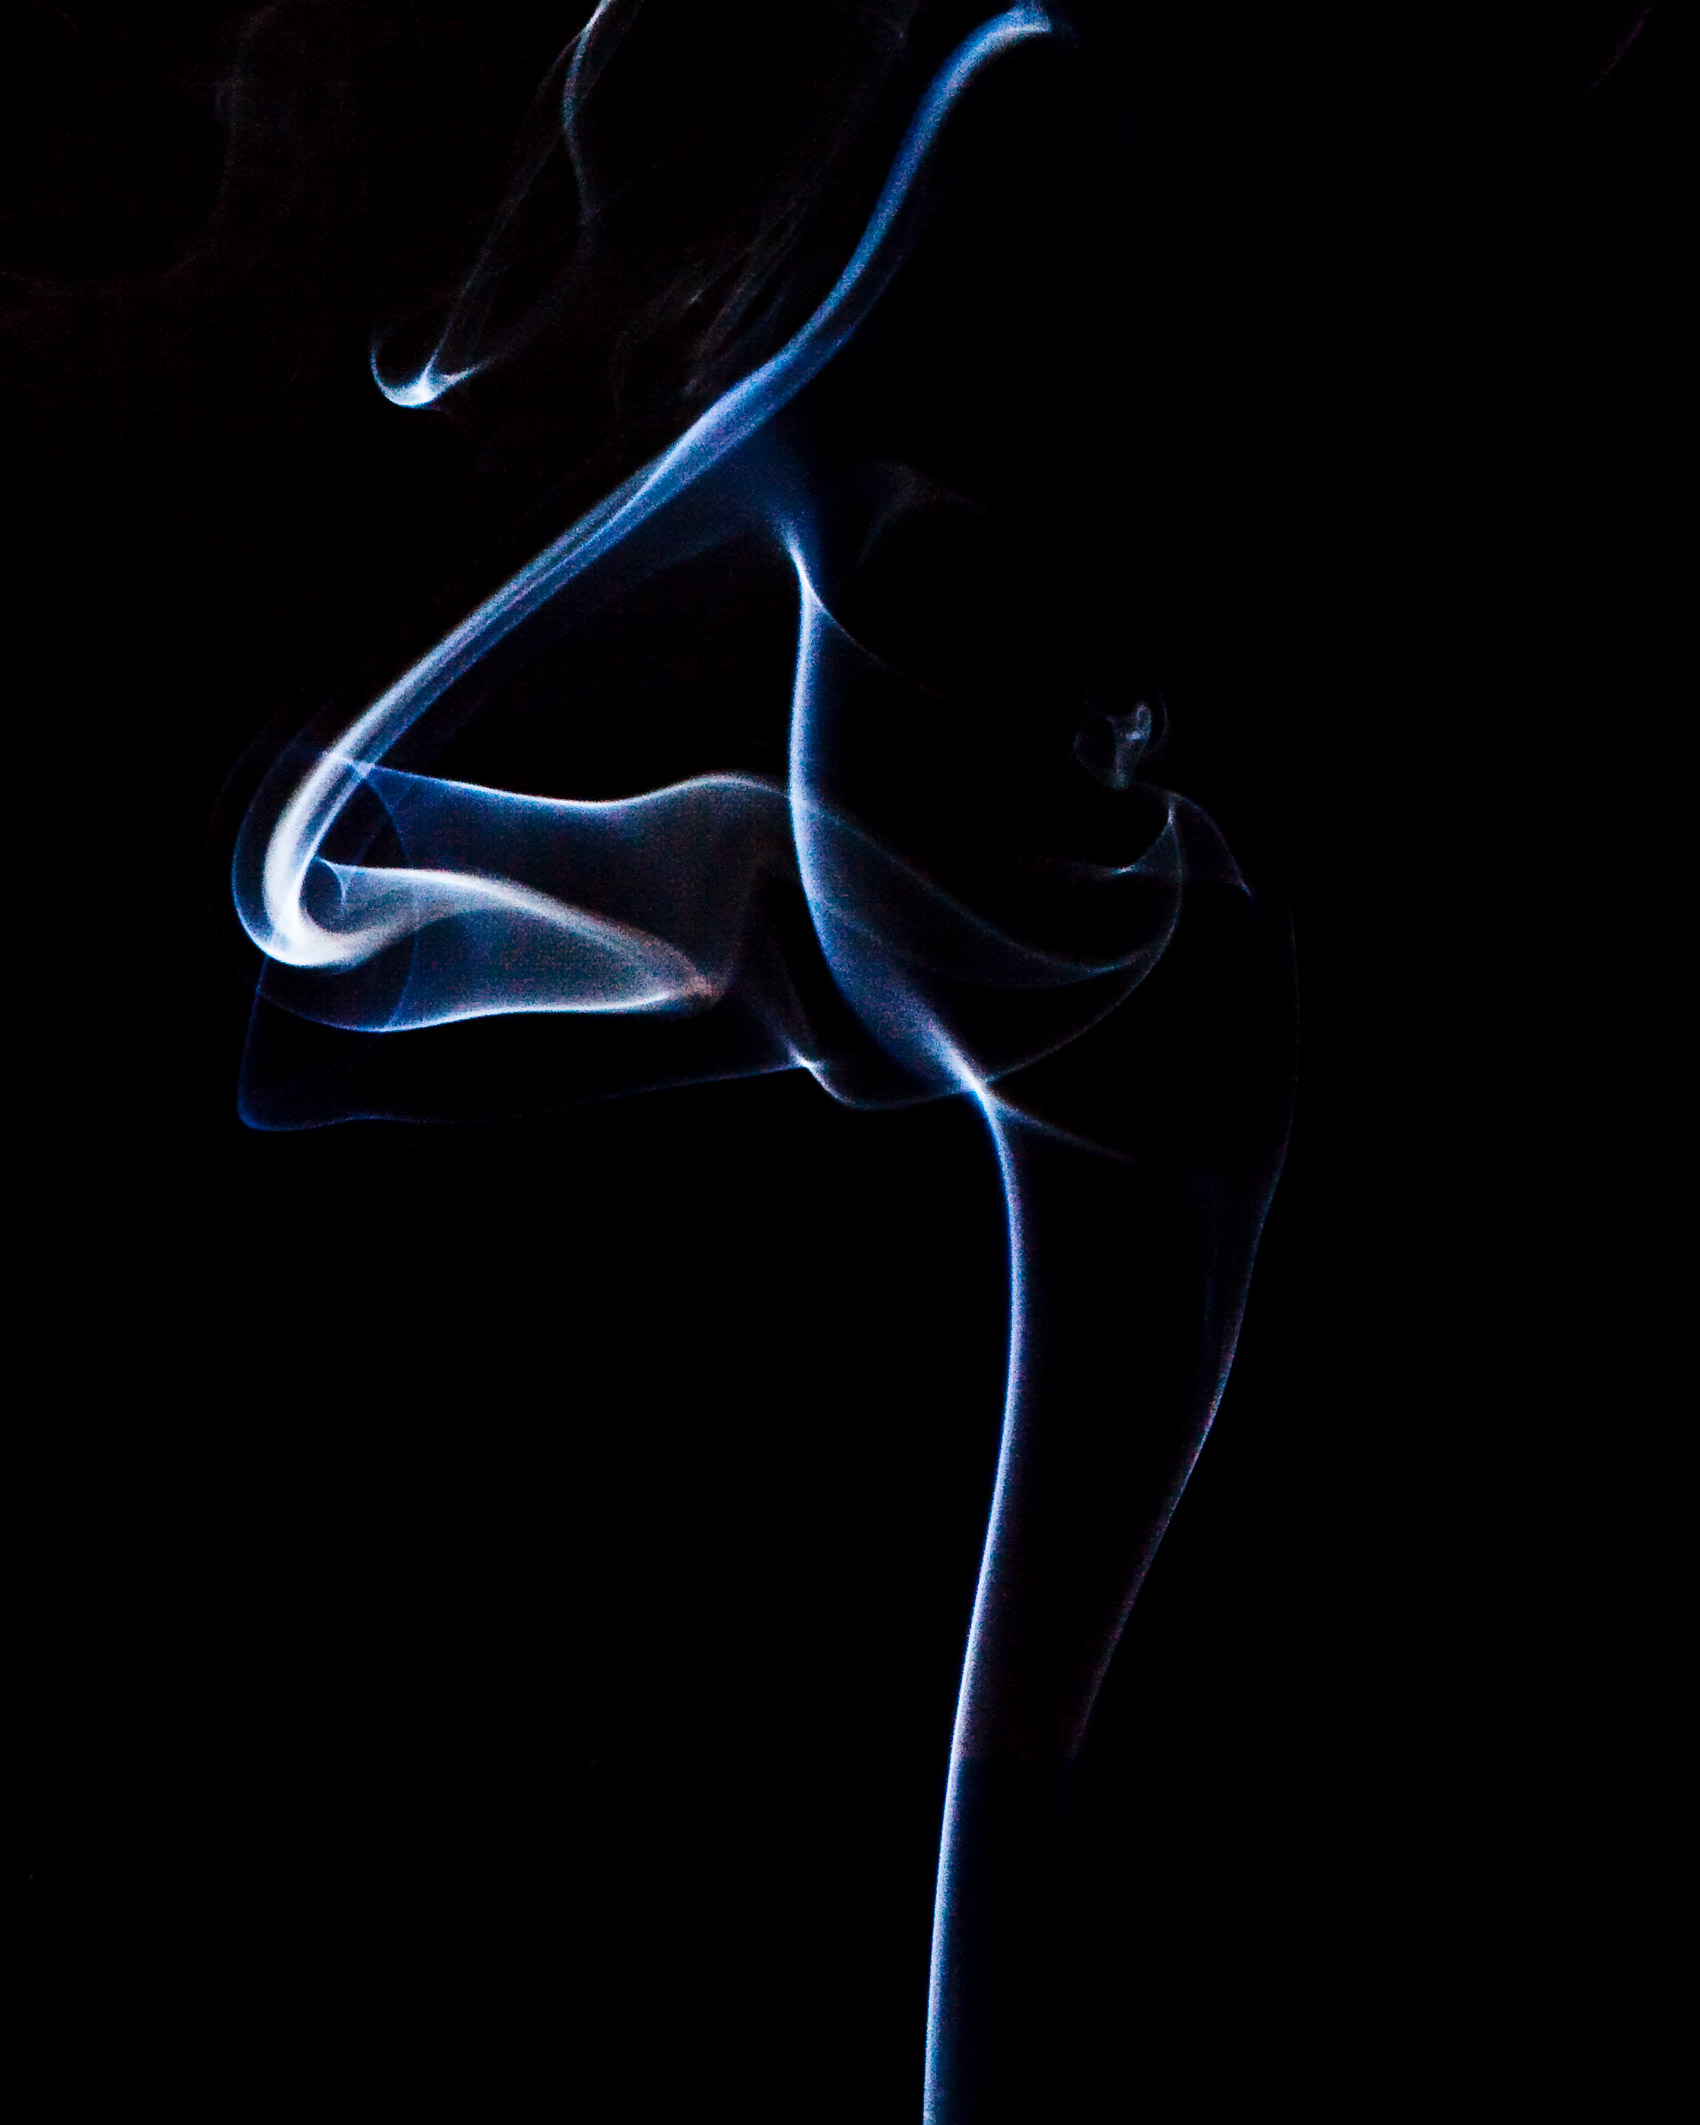 Cigarette Smoke Photography